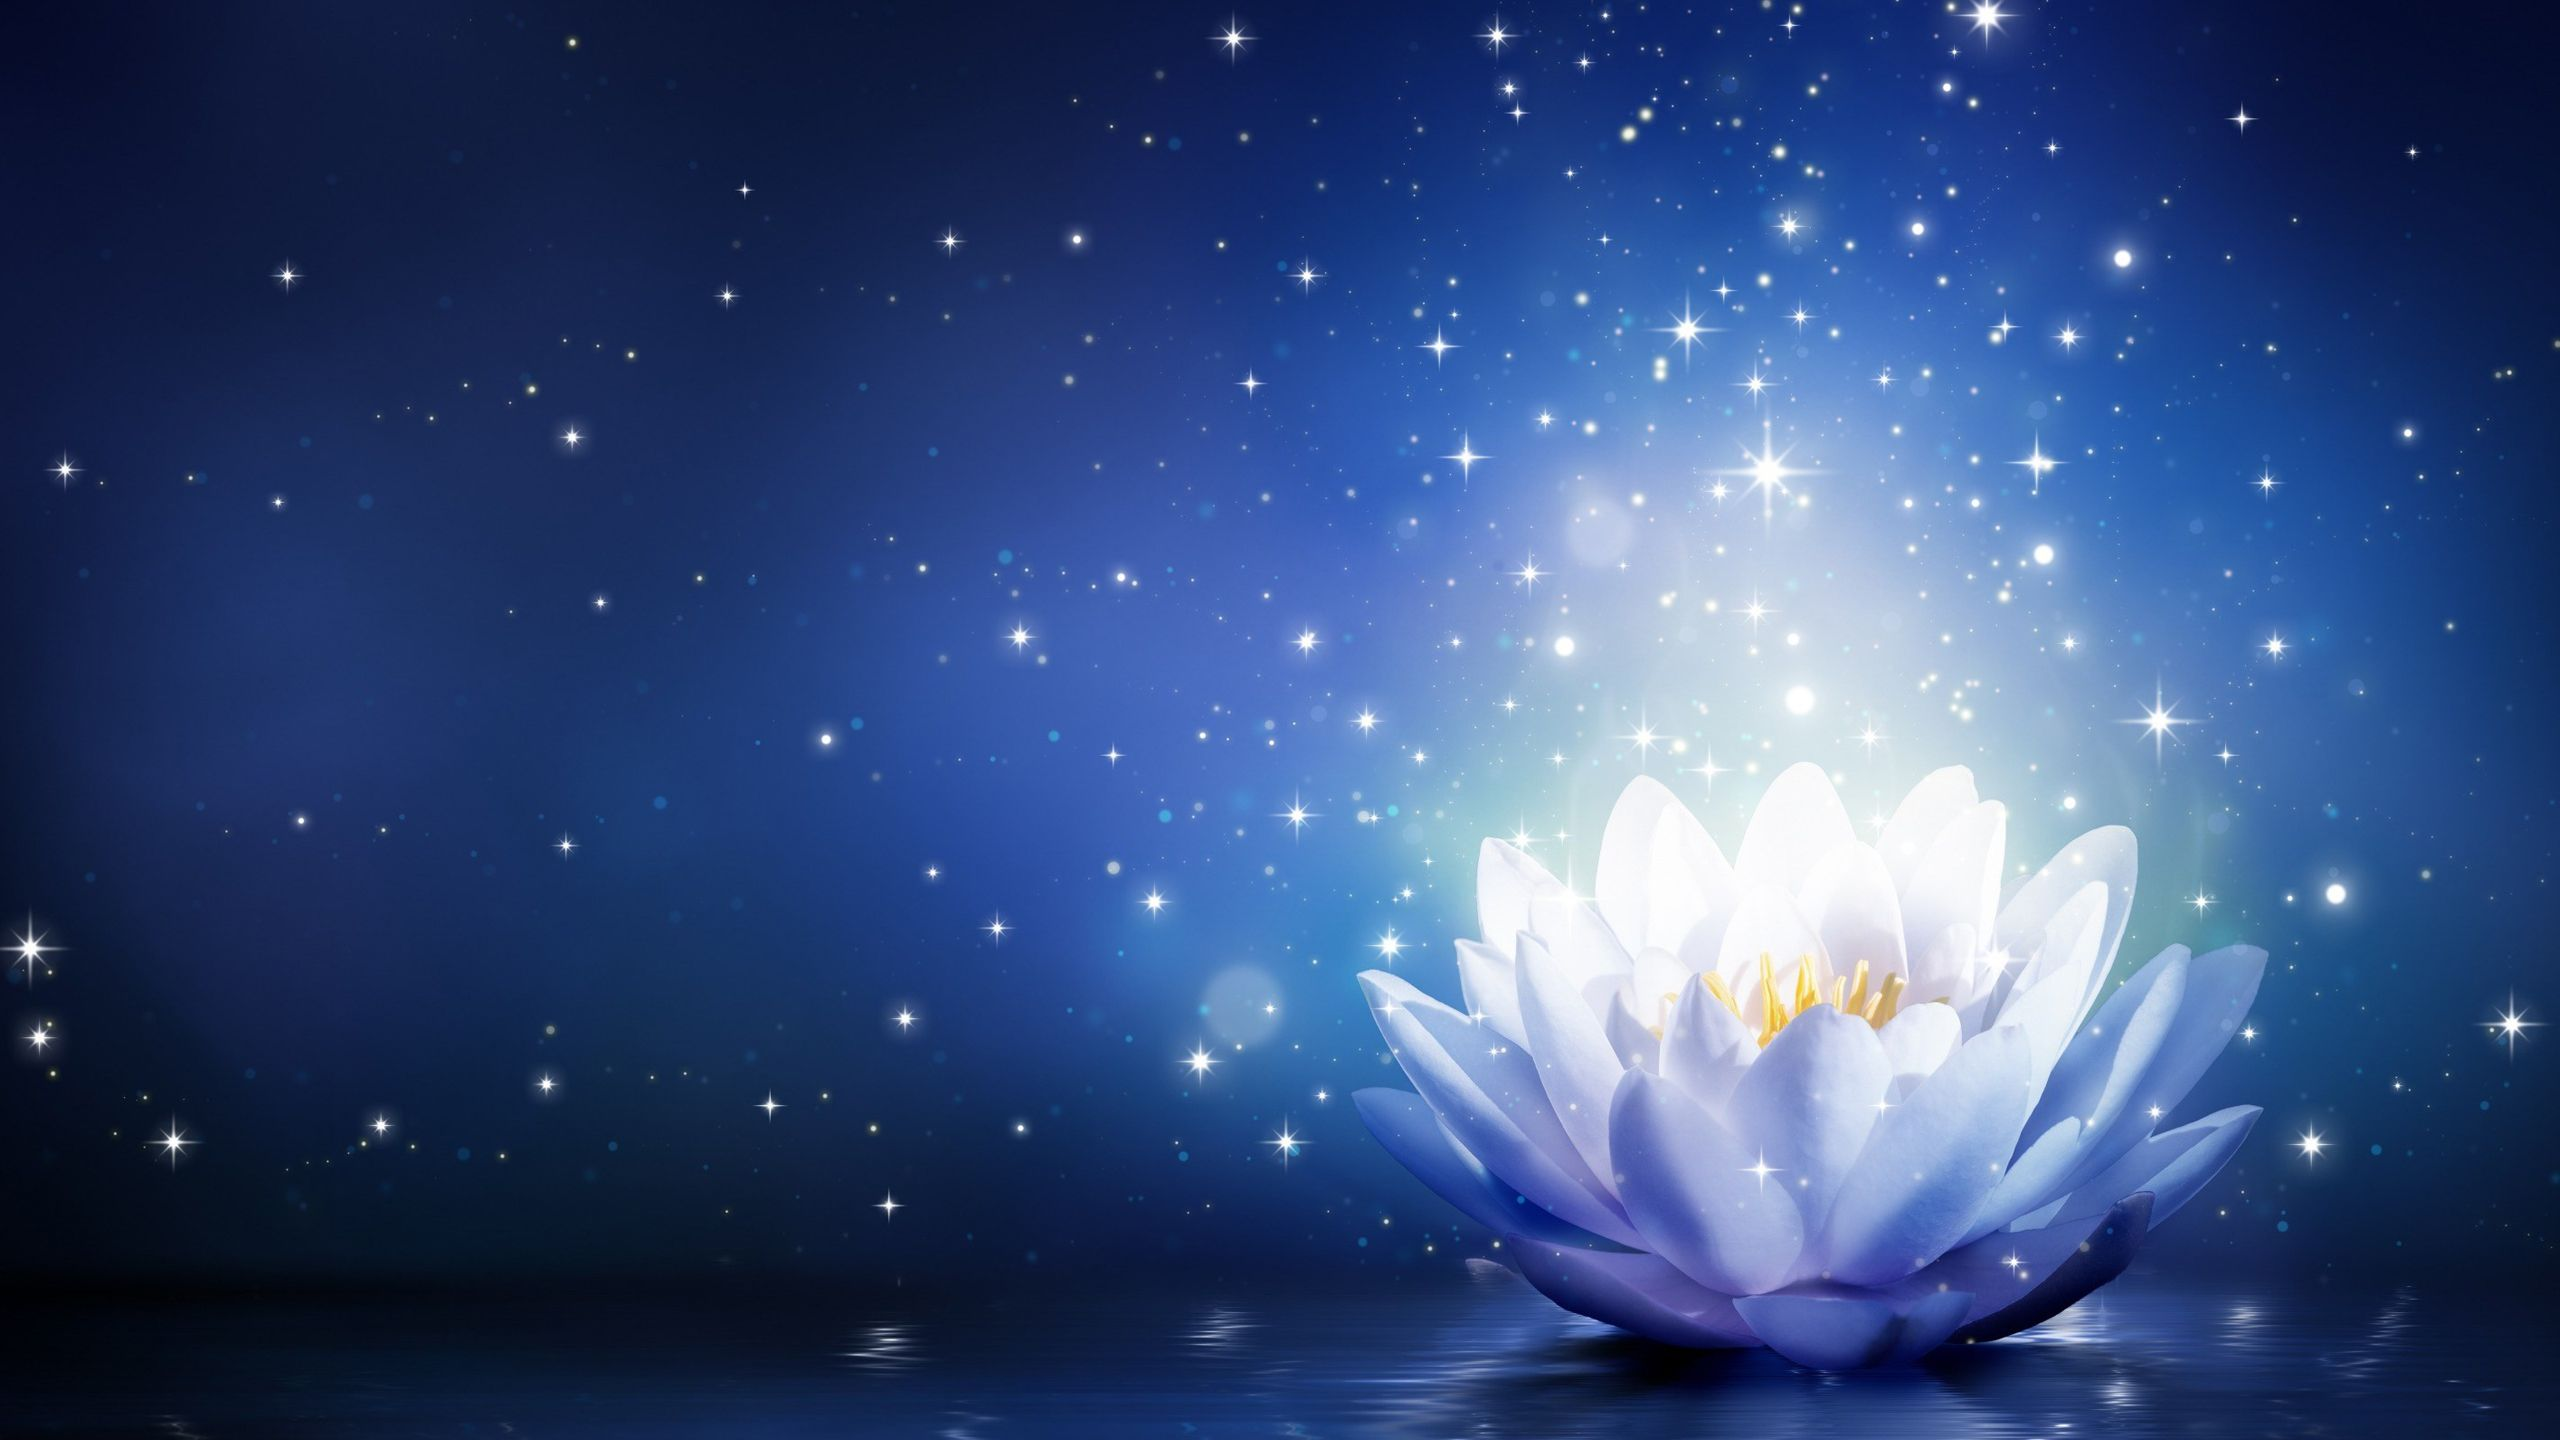 Image Result For Images For White Lotus With Transparent